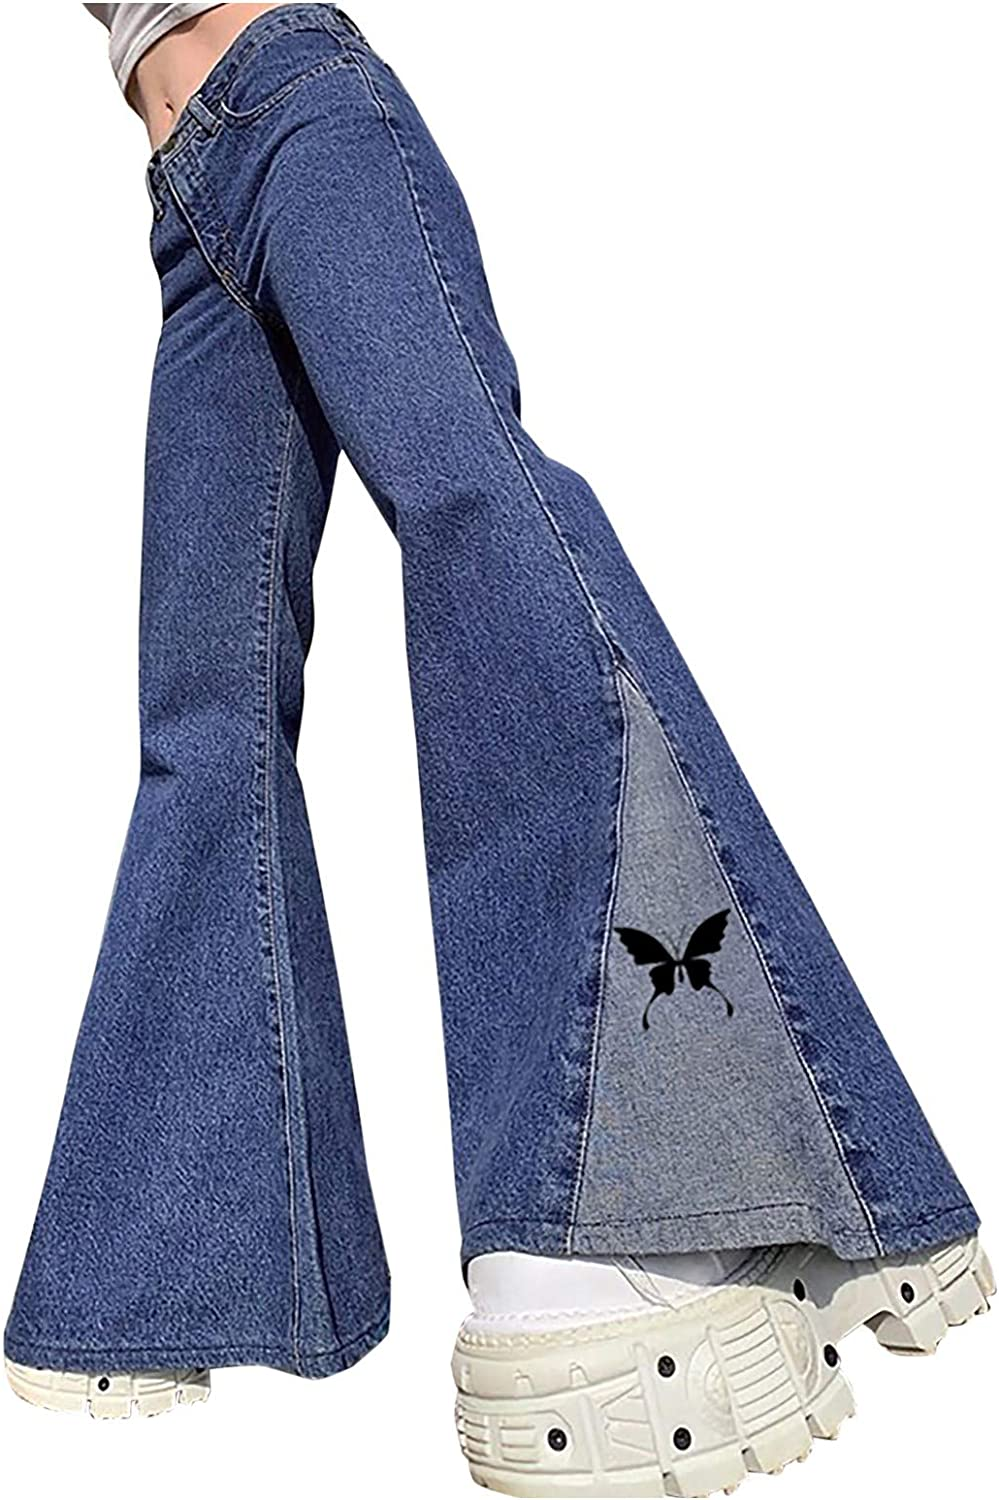 Kinsaiy Jeans for Women High Waisted Stretch,Street Trendy Butterfly Flares Wide Pants Baggy Trousers Denim Bell Jeans